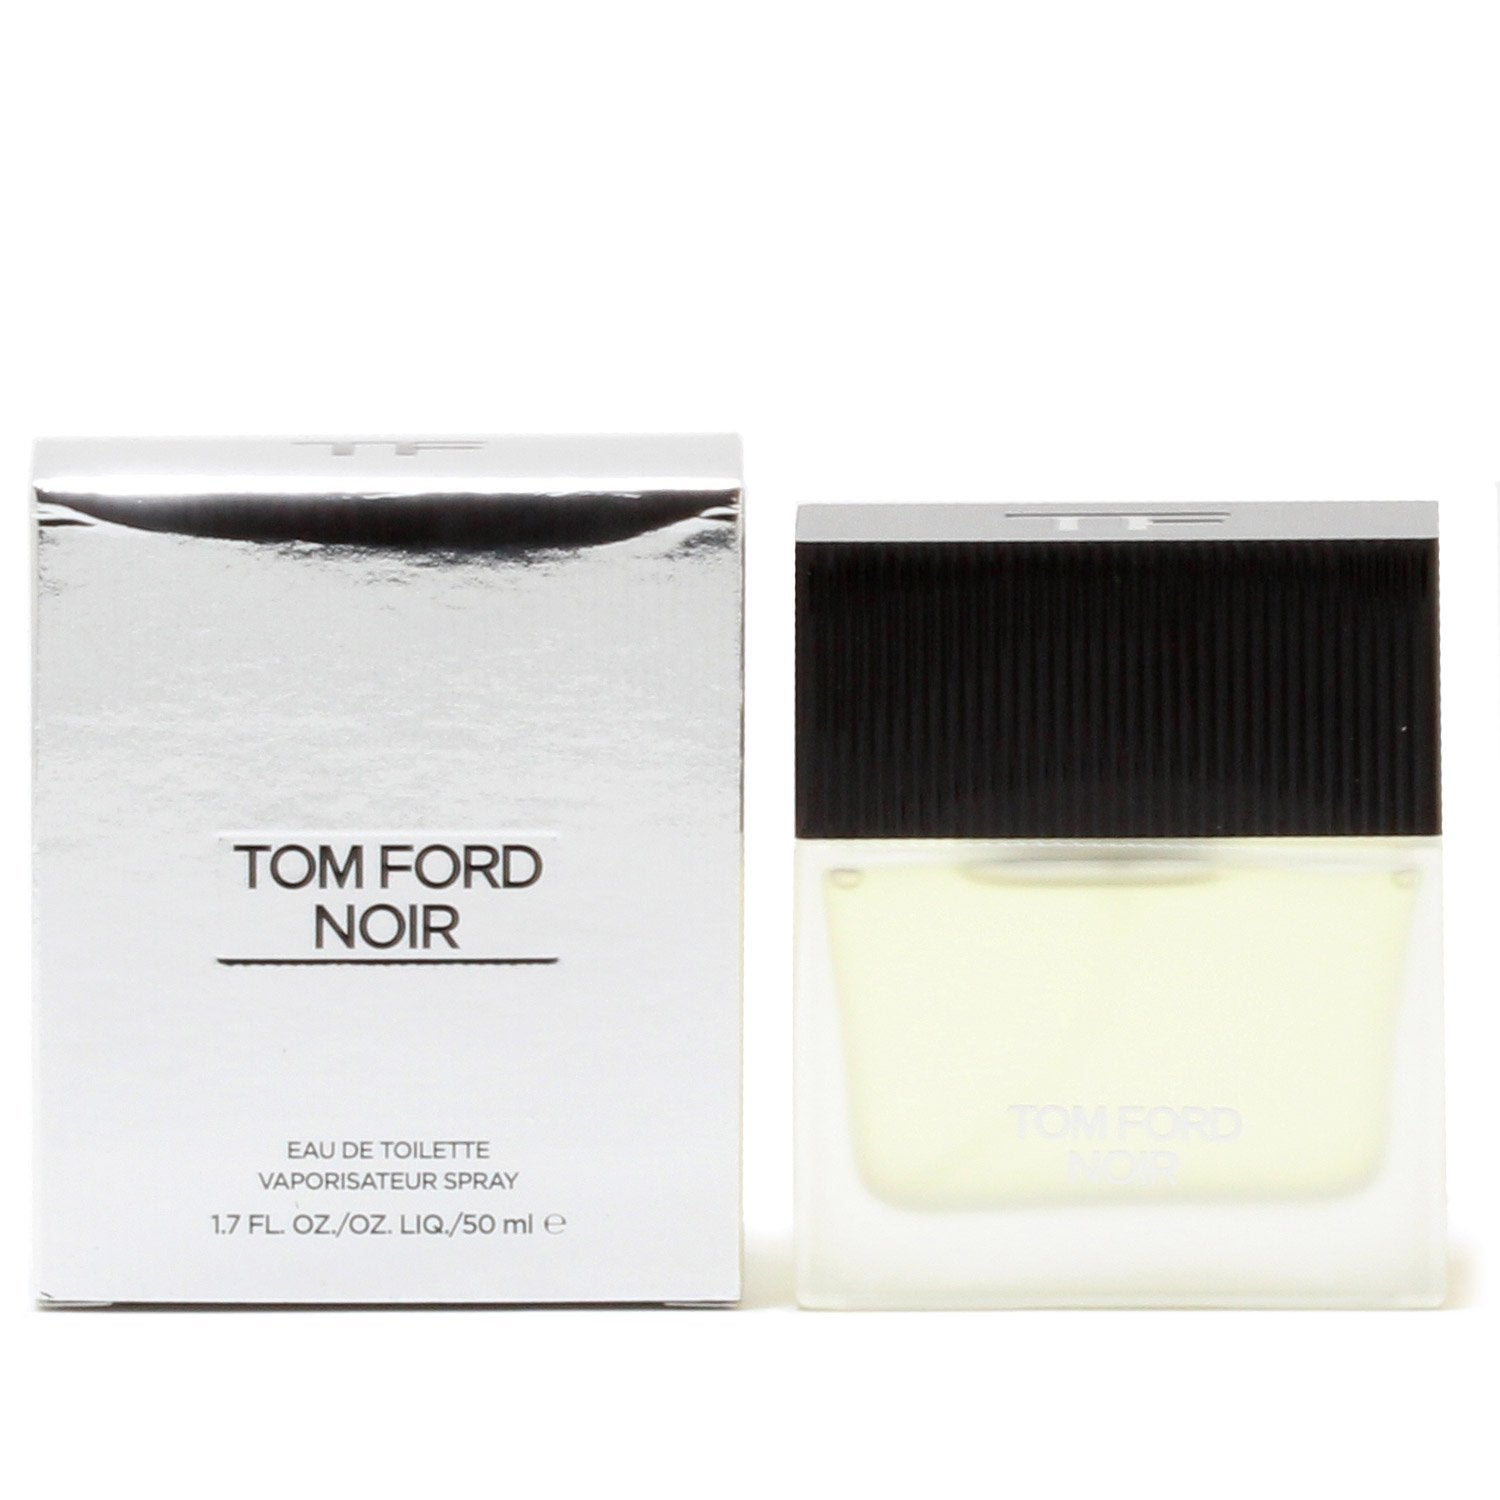 Cologne - TOM FORD NOIR FOR MEN - EAU DE TOILETTE SPRAY, 1.7 OZ